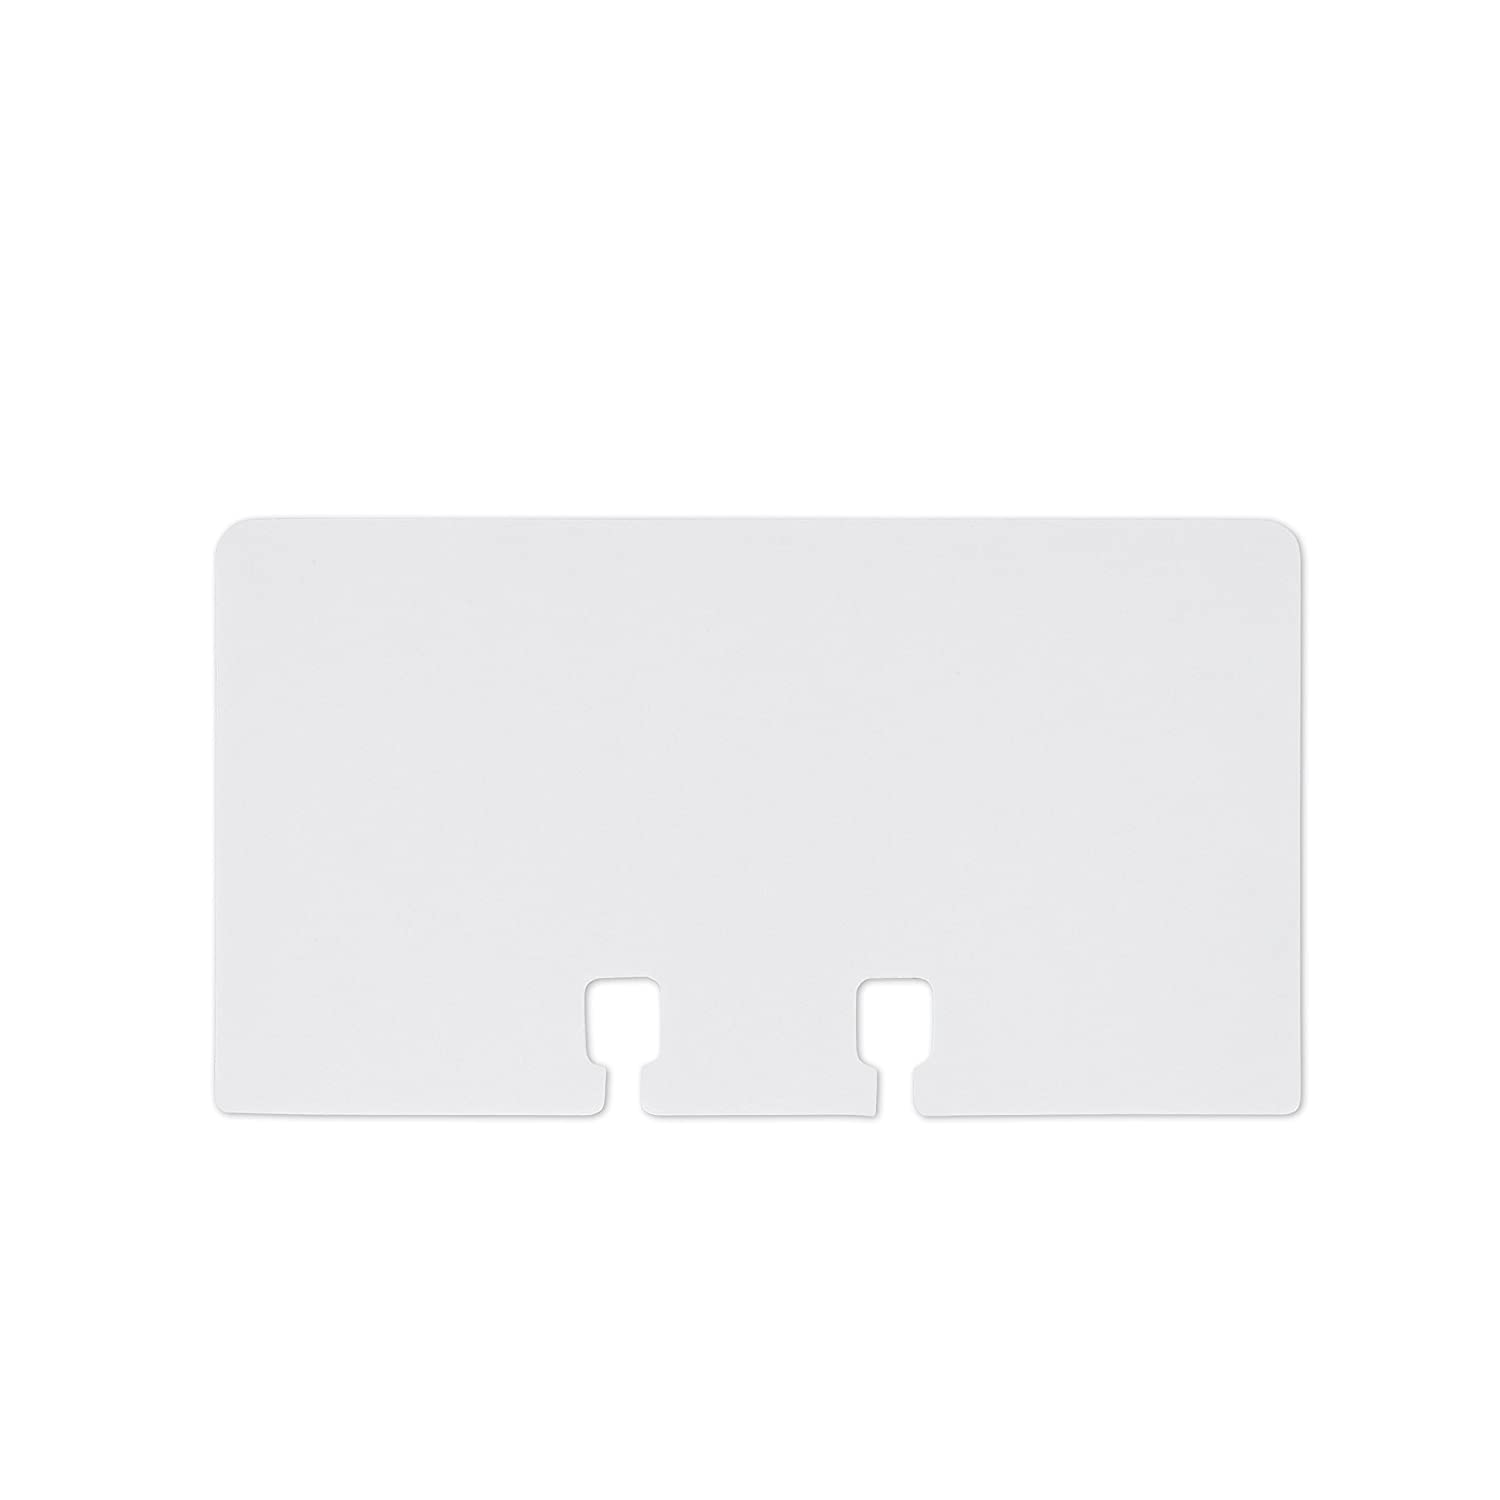 Amazon.com : Rolodex Business Card Tray Refill Sleeves, Holds 2 of ...